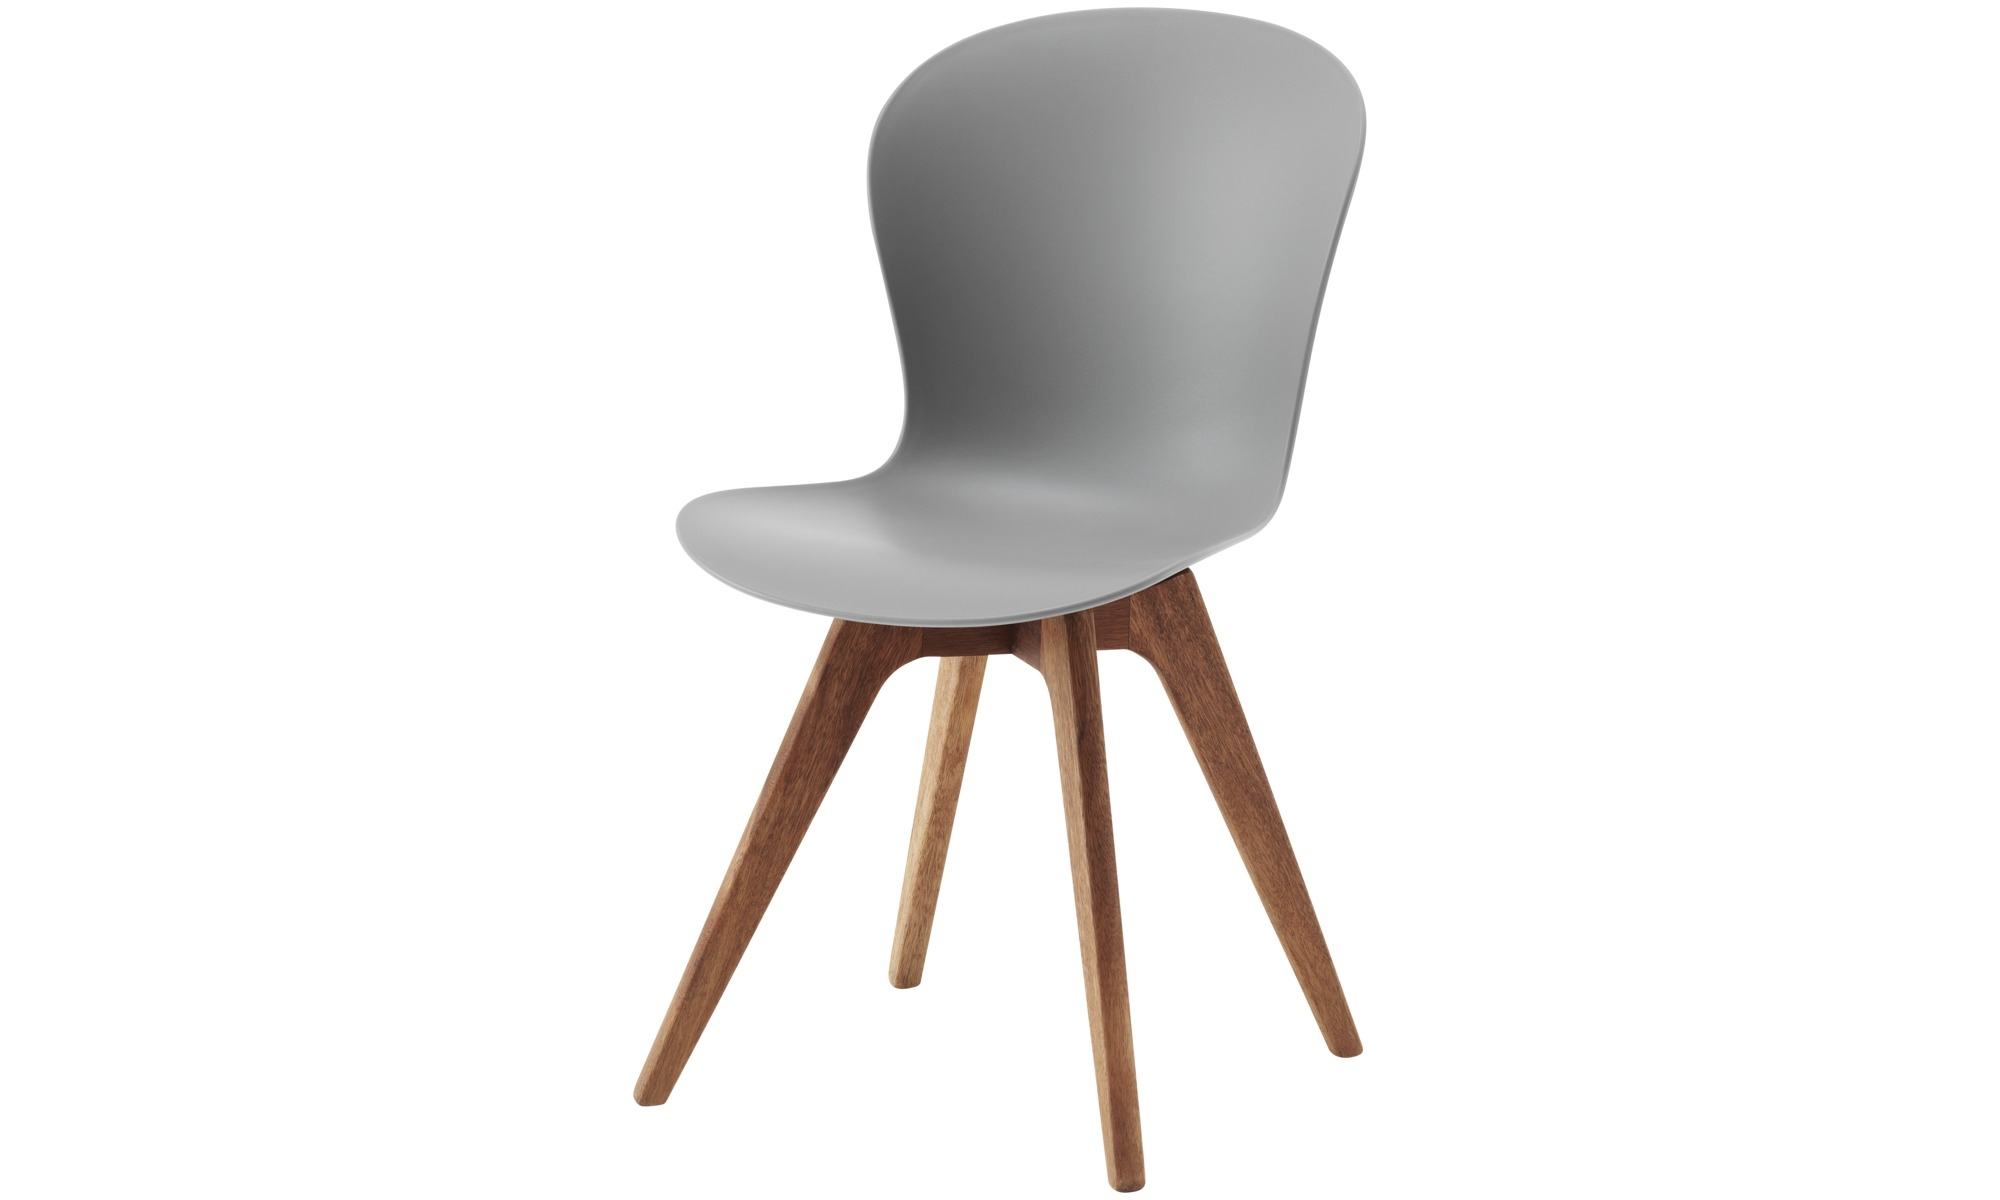 Dining chairs - Adelaide chair (for in and outdoor use) - Grey - Plastic